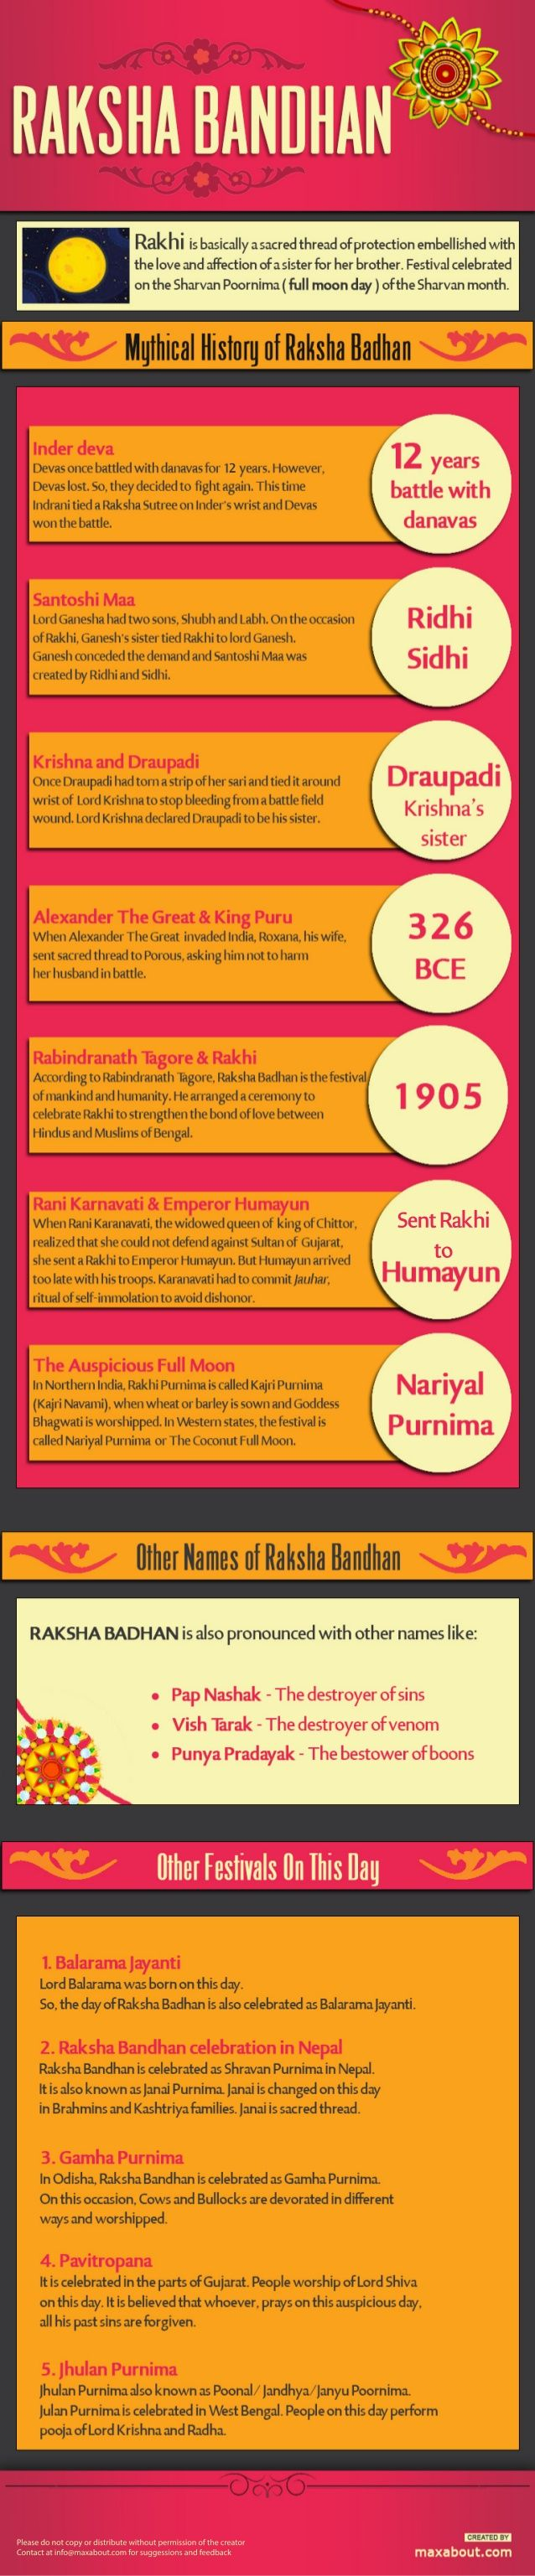 Some interesting facts about Raksha Bandhan! Provided by Maxabout - http://mobiles.maxabout.com/sms/rakhi_sms.aspx